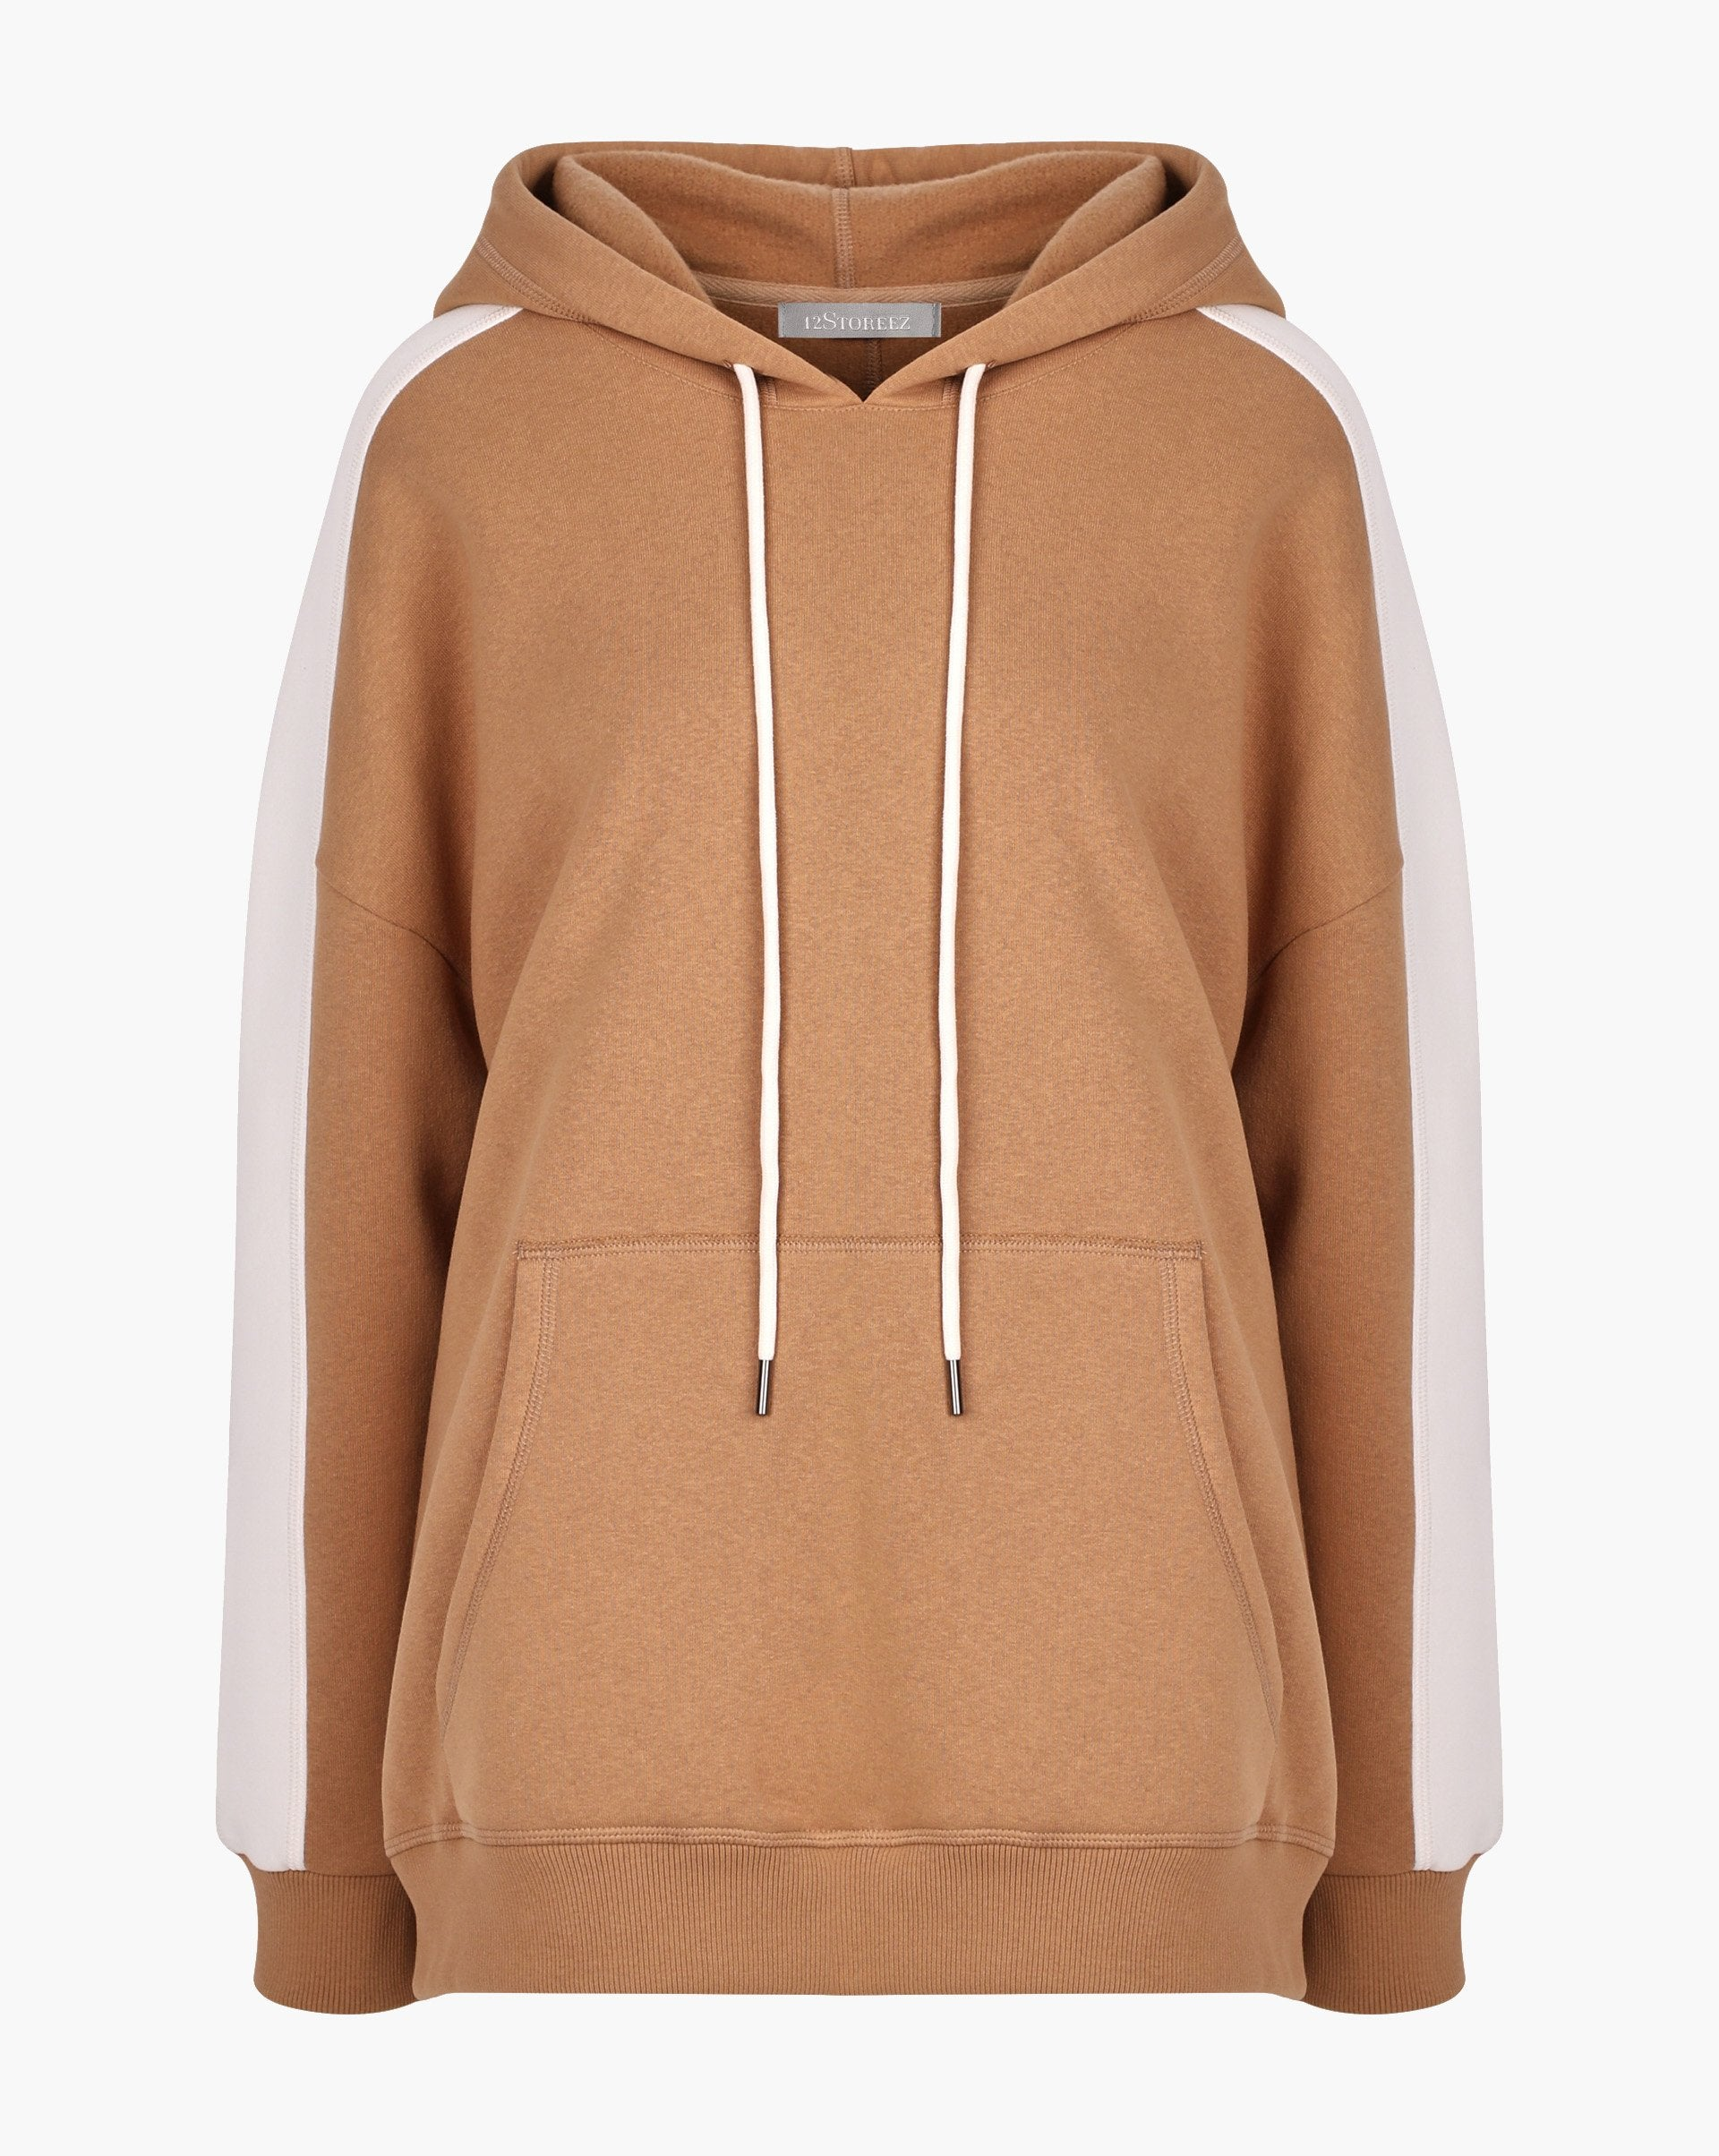 Oversized hooded sweatshirt - 12 STOREEZ